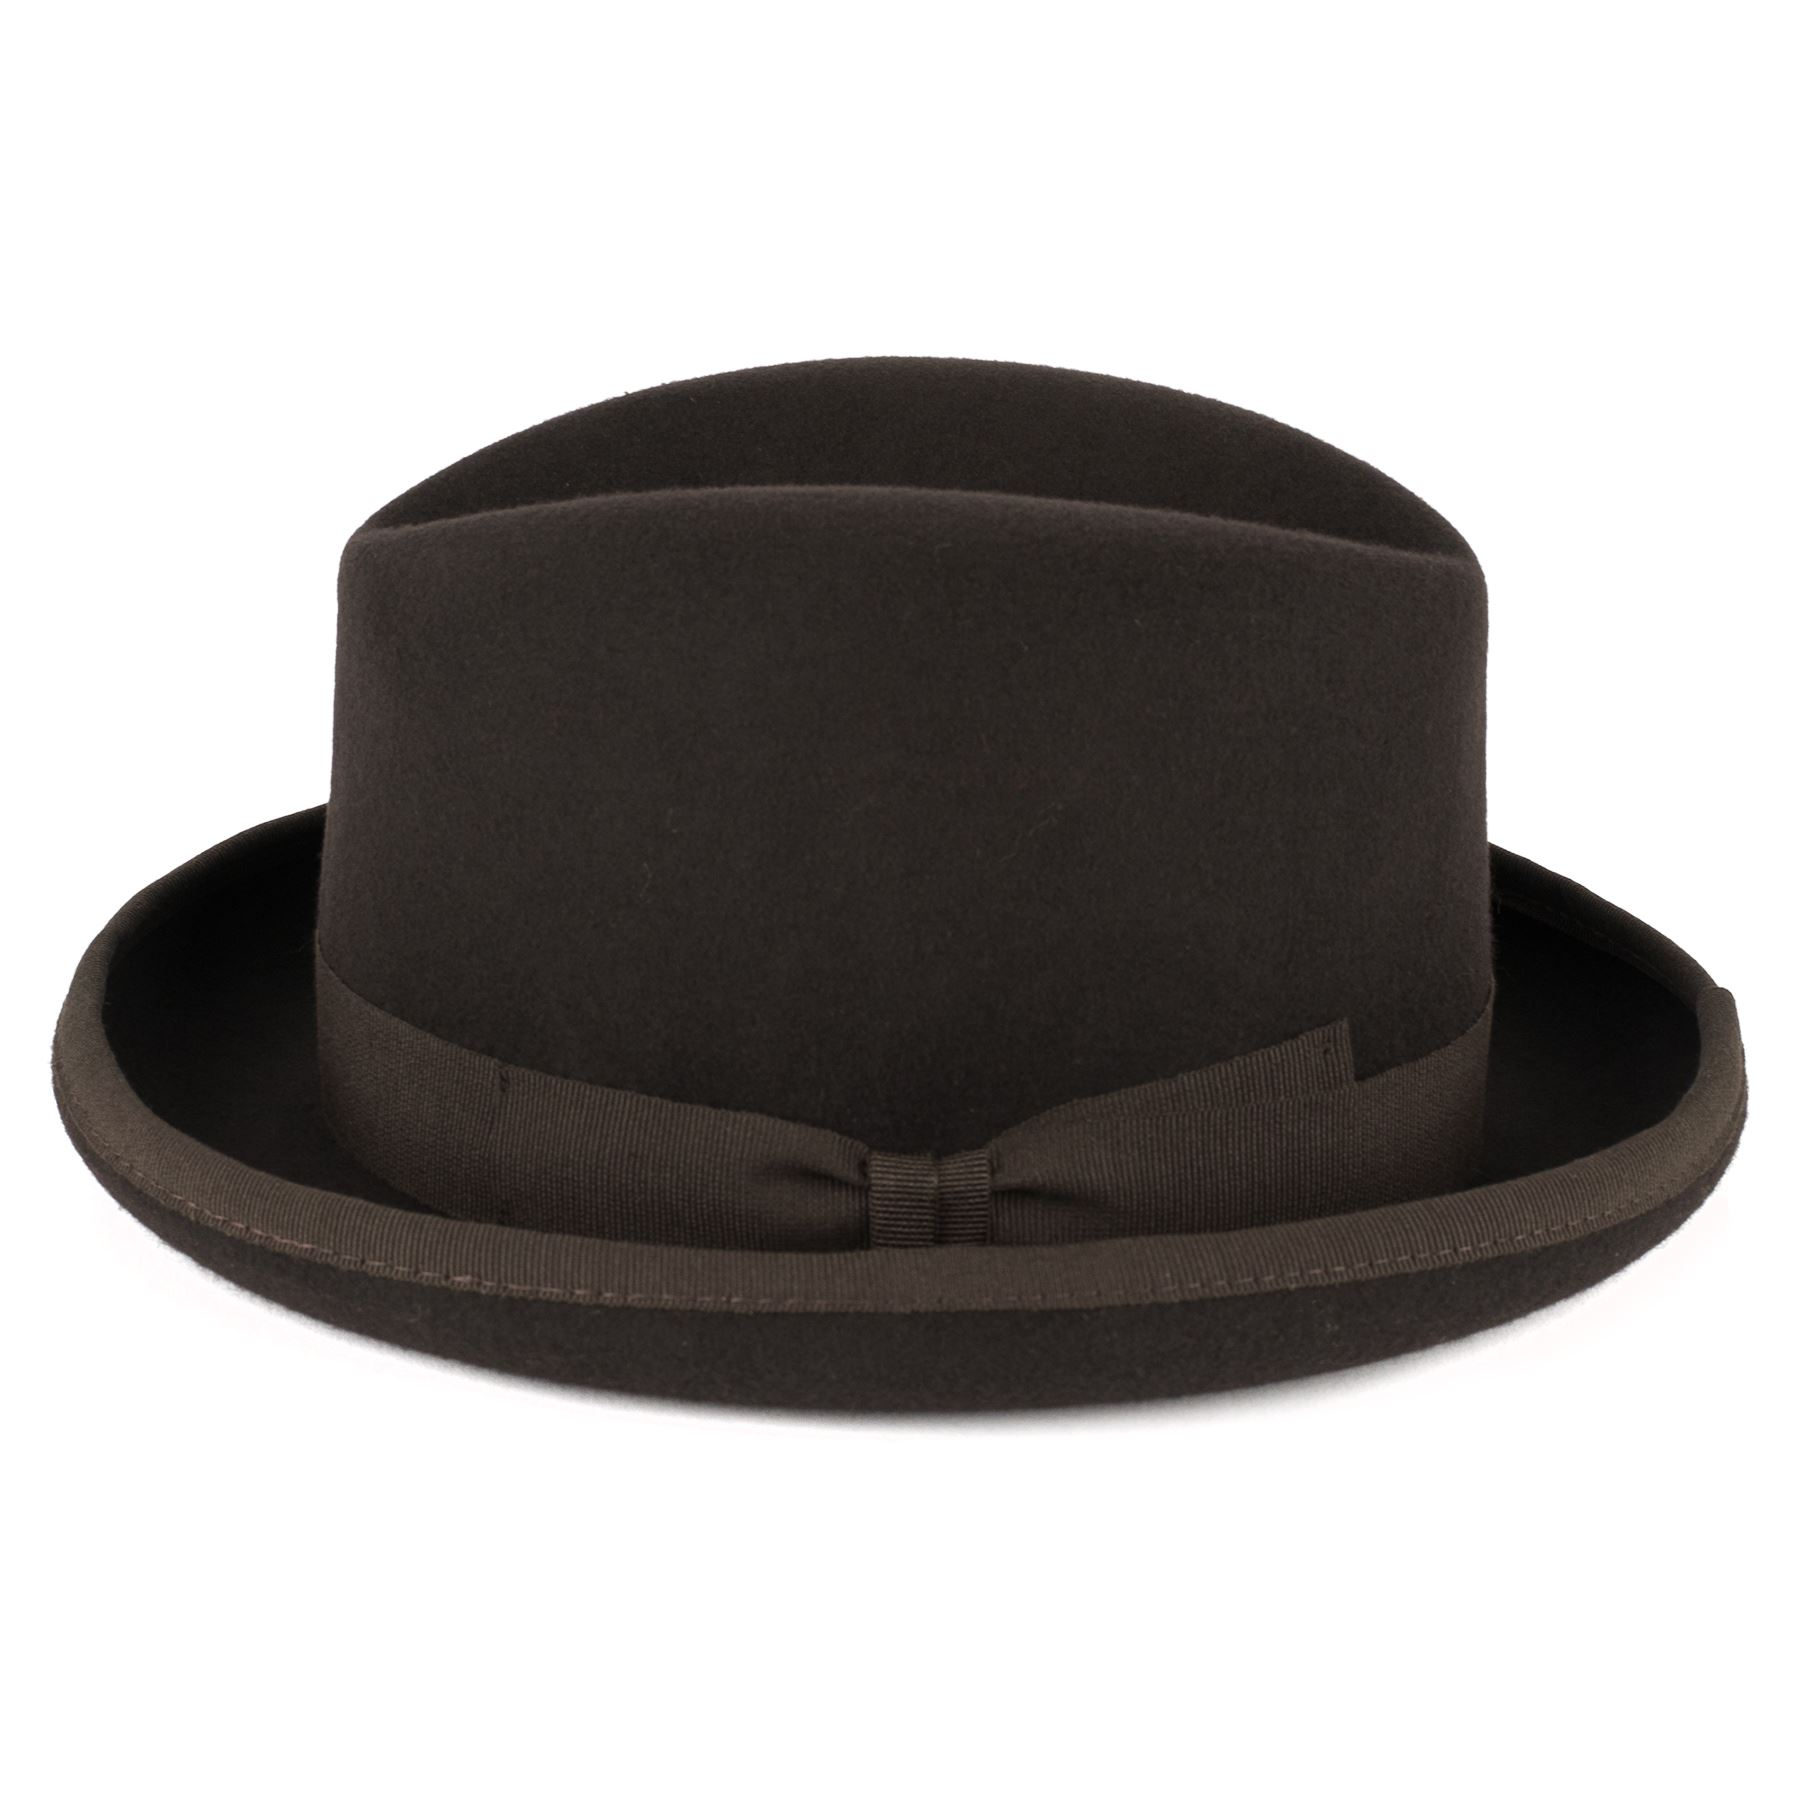 2d790ca4c4843 ZAKIRA Men s Homburg Hat in Fine Wool Felt - Handmade in Italy